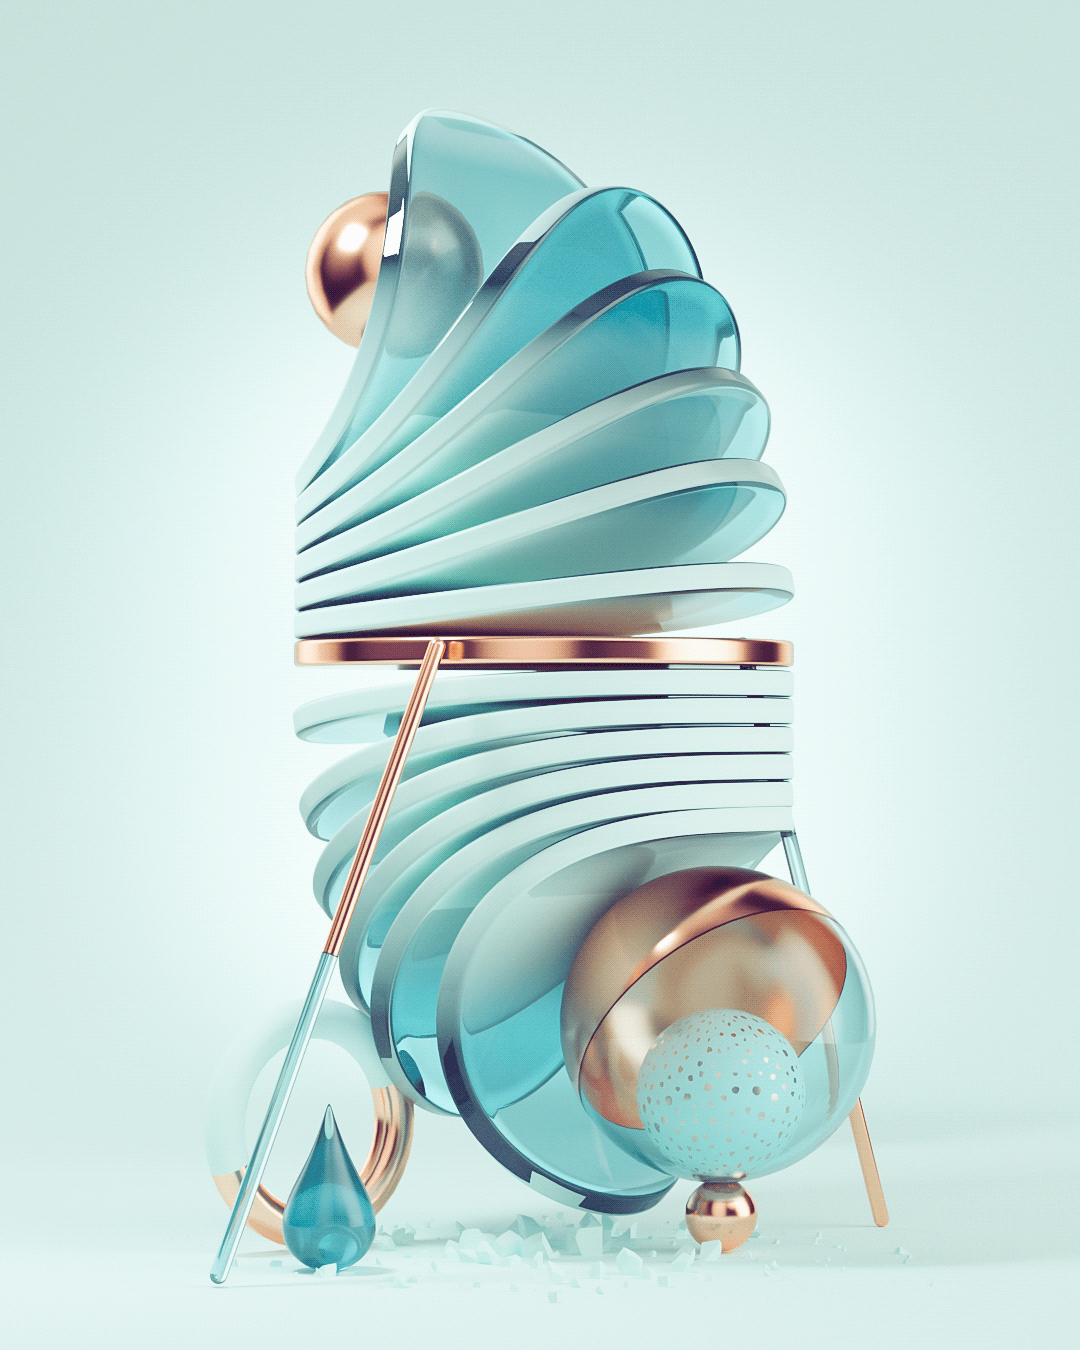 Captivating and nonsense in 3D series by Roman Bratschi